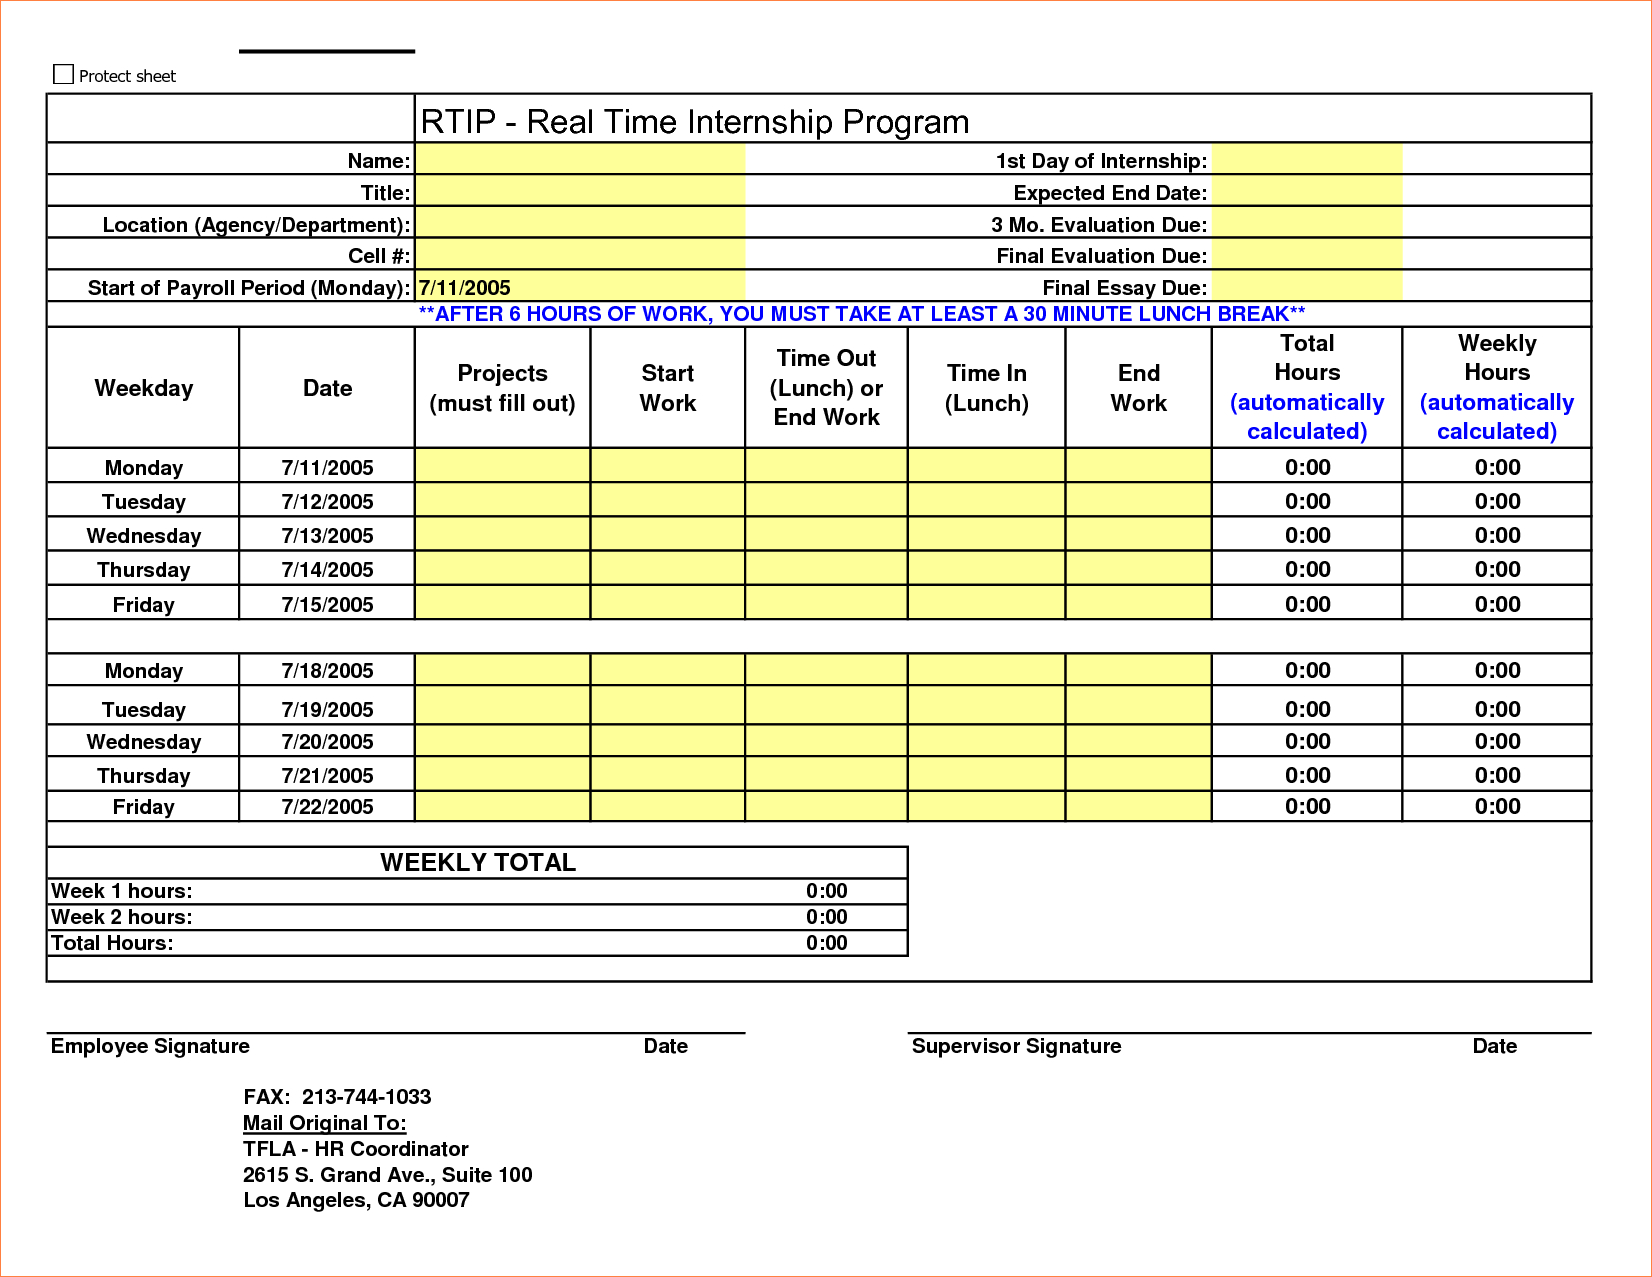 Billable Hours Spreadsheet Template Throughout Daily Billable Hours Timesheet Template – Newtopdirectory